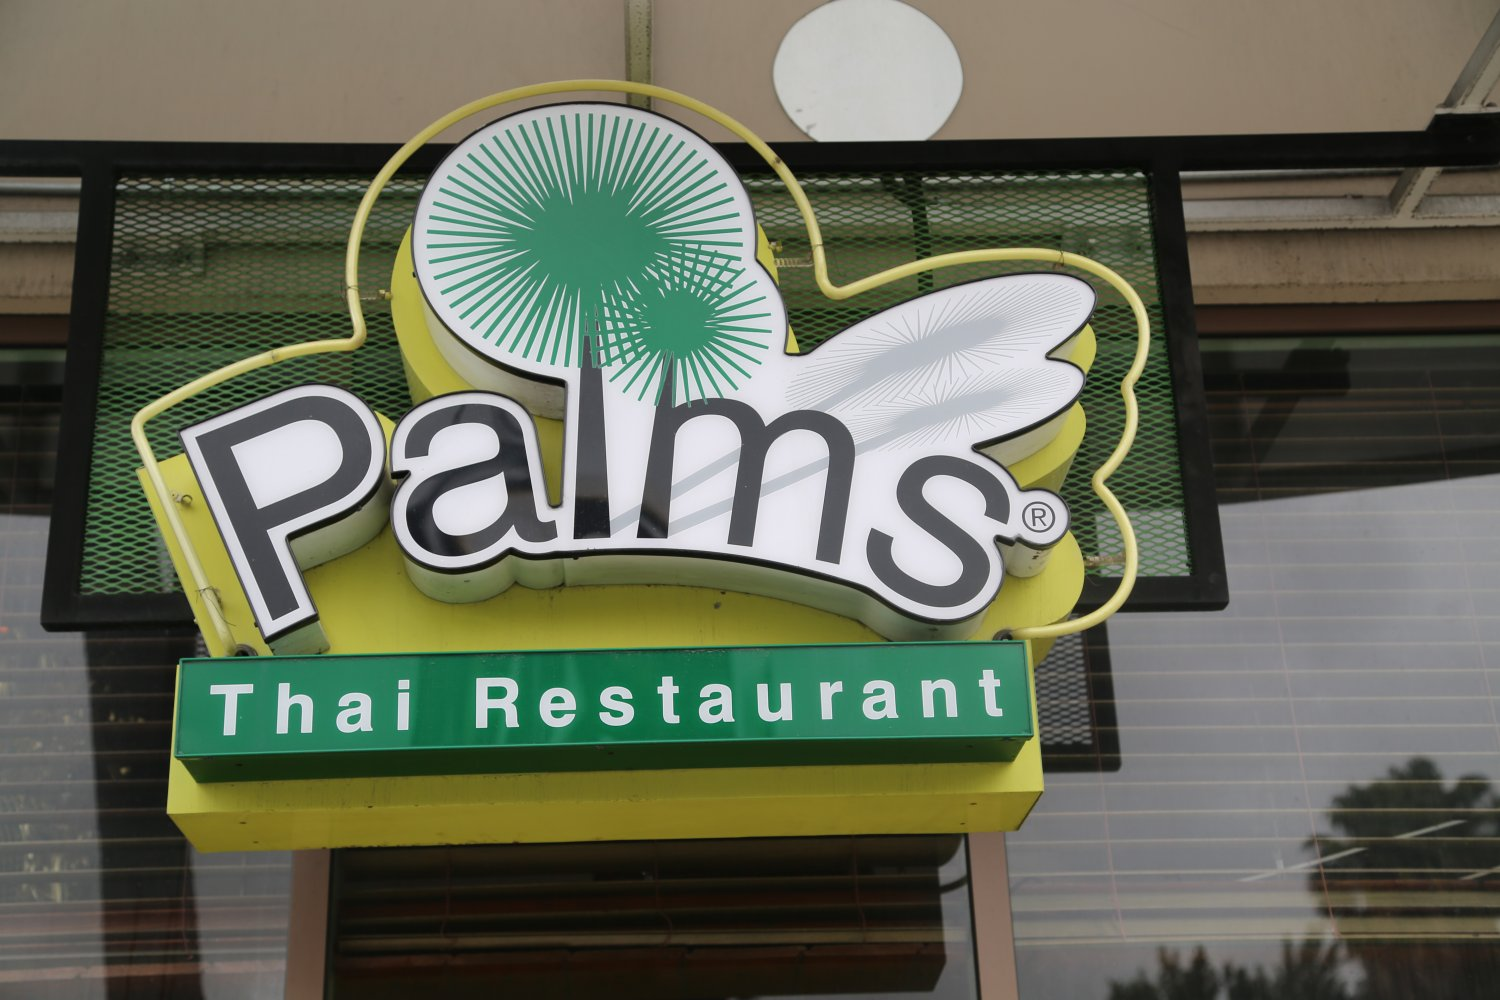 Palms Thai Restaurant Is One Of The Better Restaurants In Entire State California This A Bold Statement But After Years Trips To